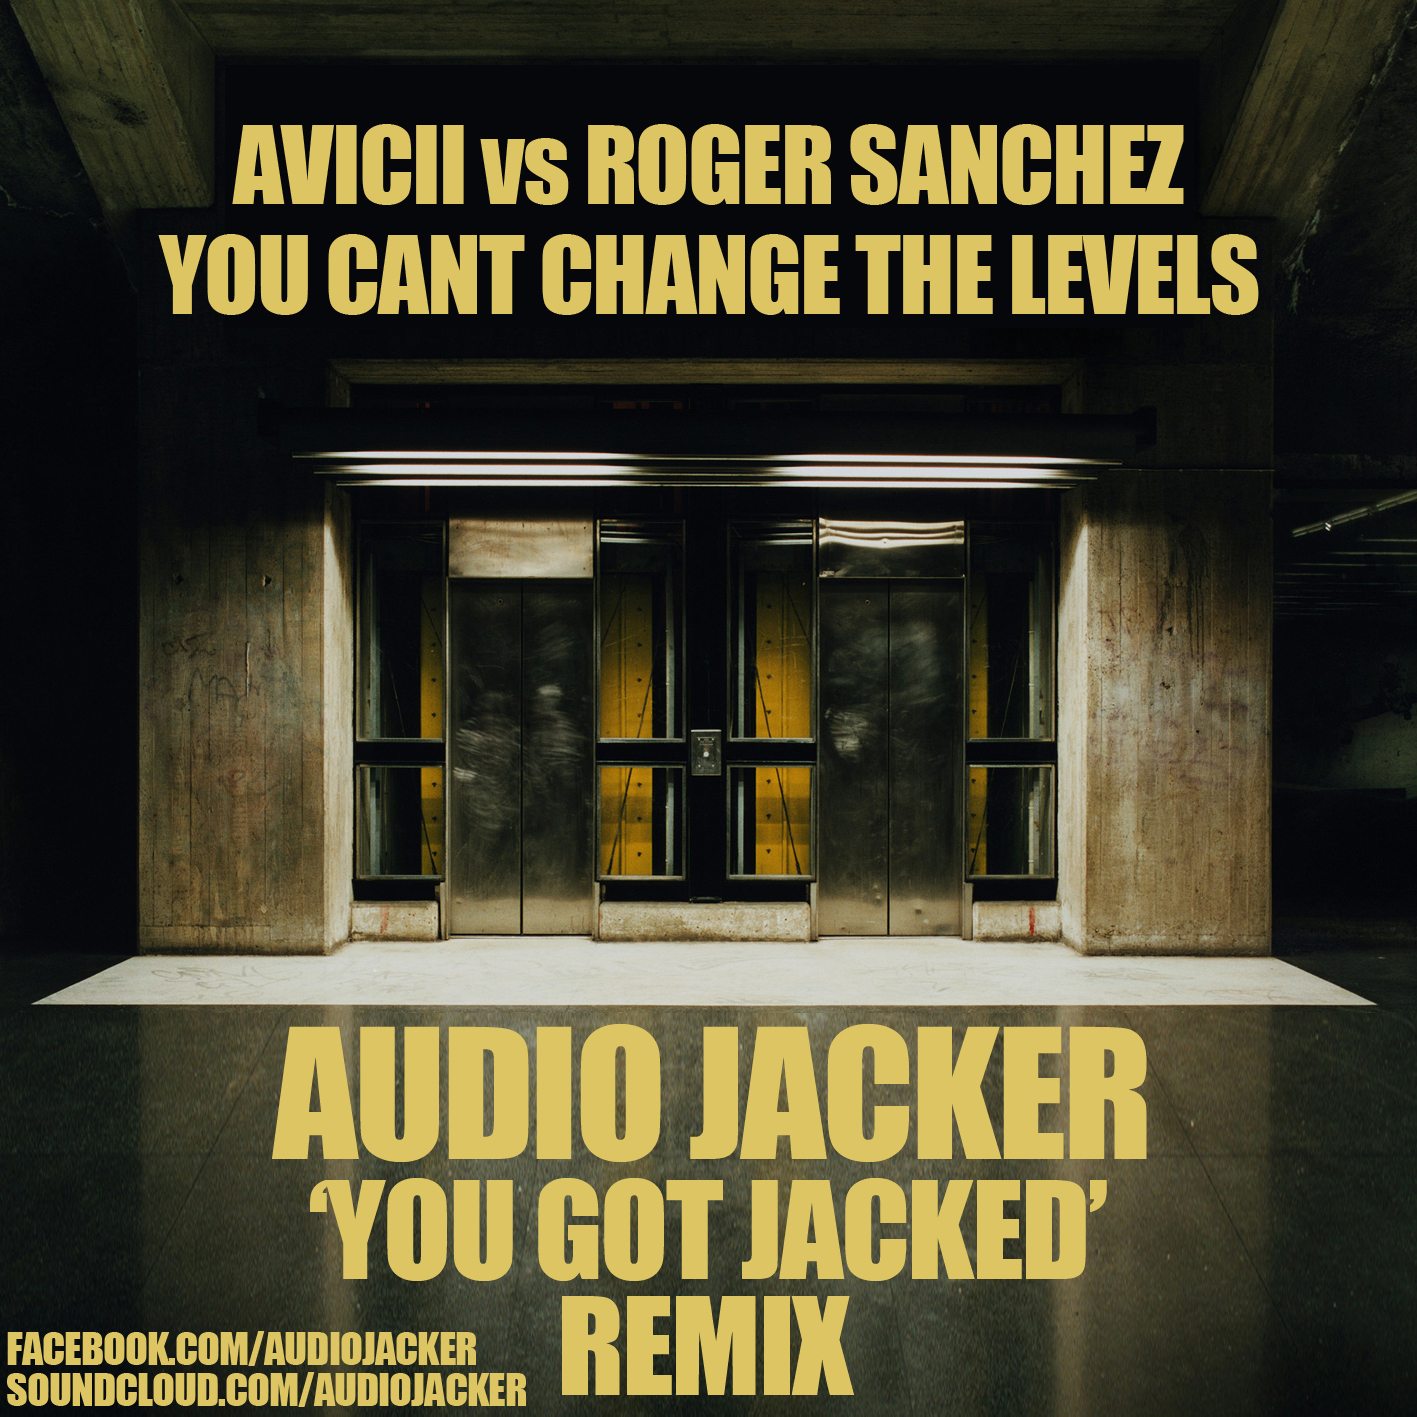 Avicii vs Roger Sanchez - You Cant Change The Levels (Audio Jacker 'You Got Jacked' Remix Edit)